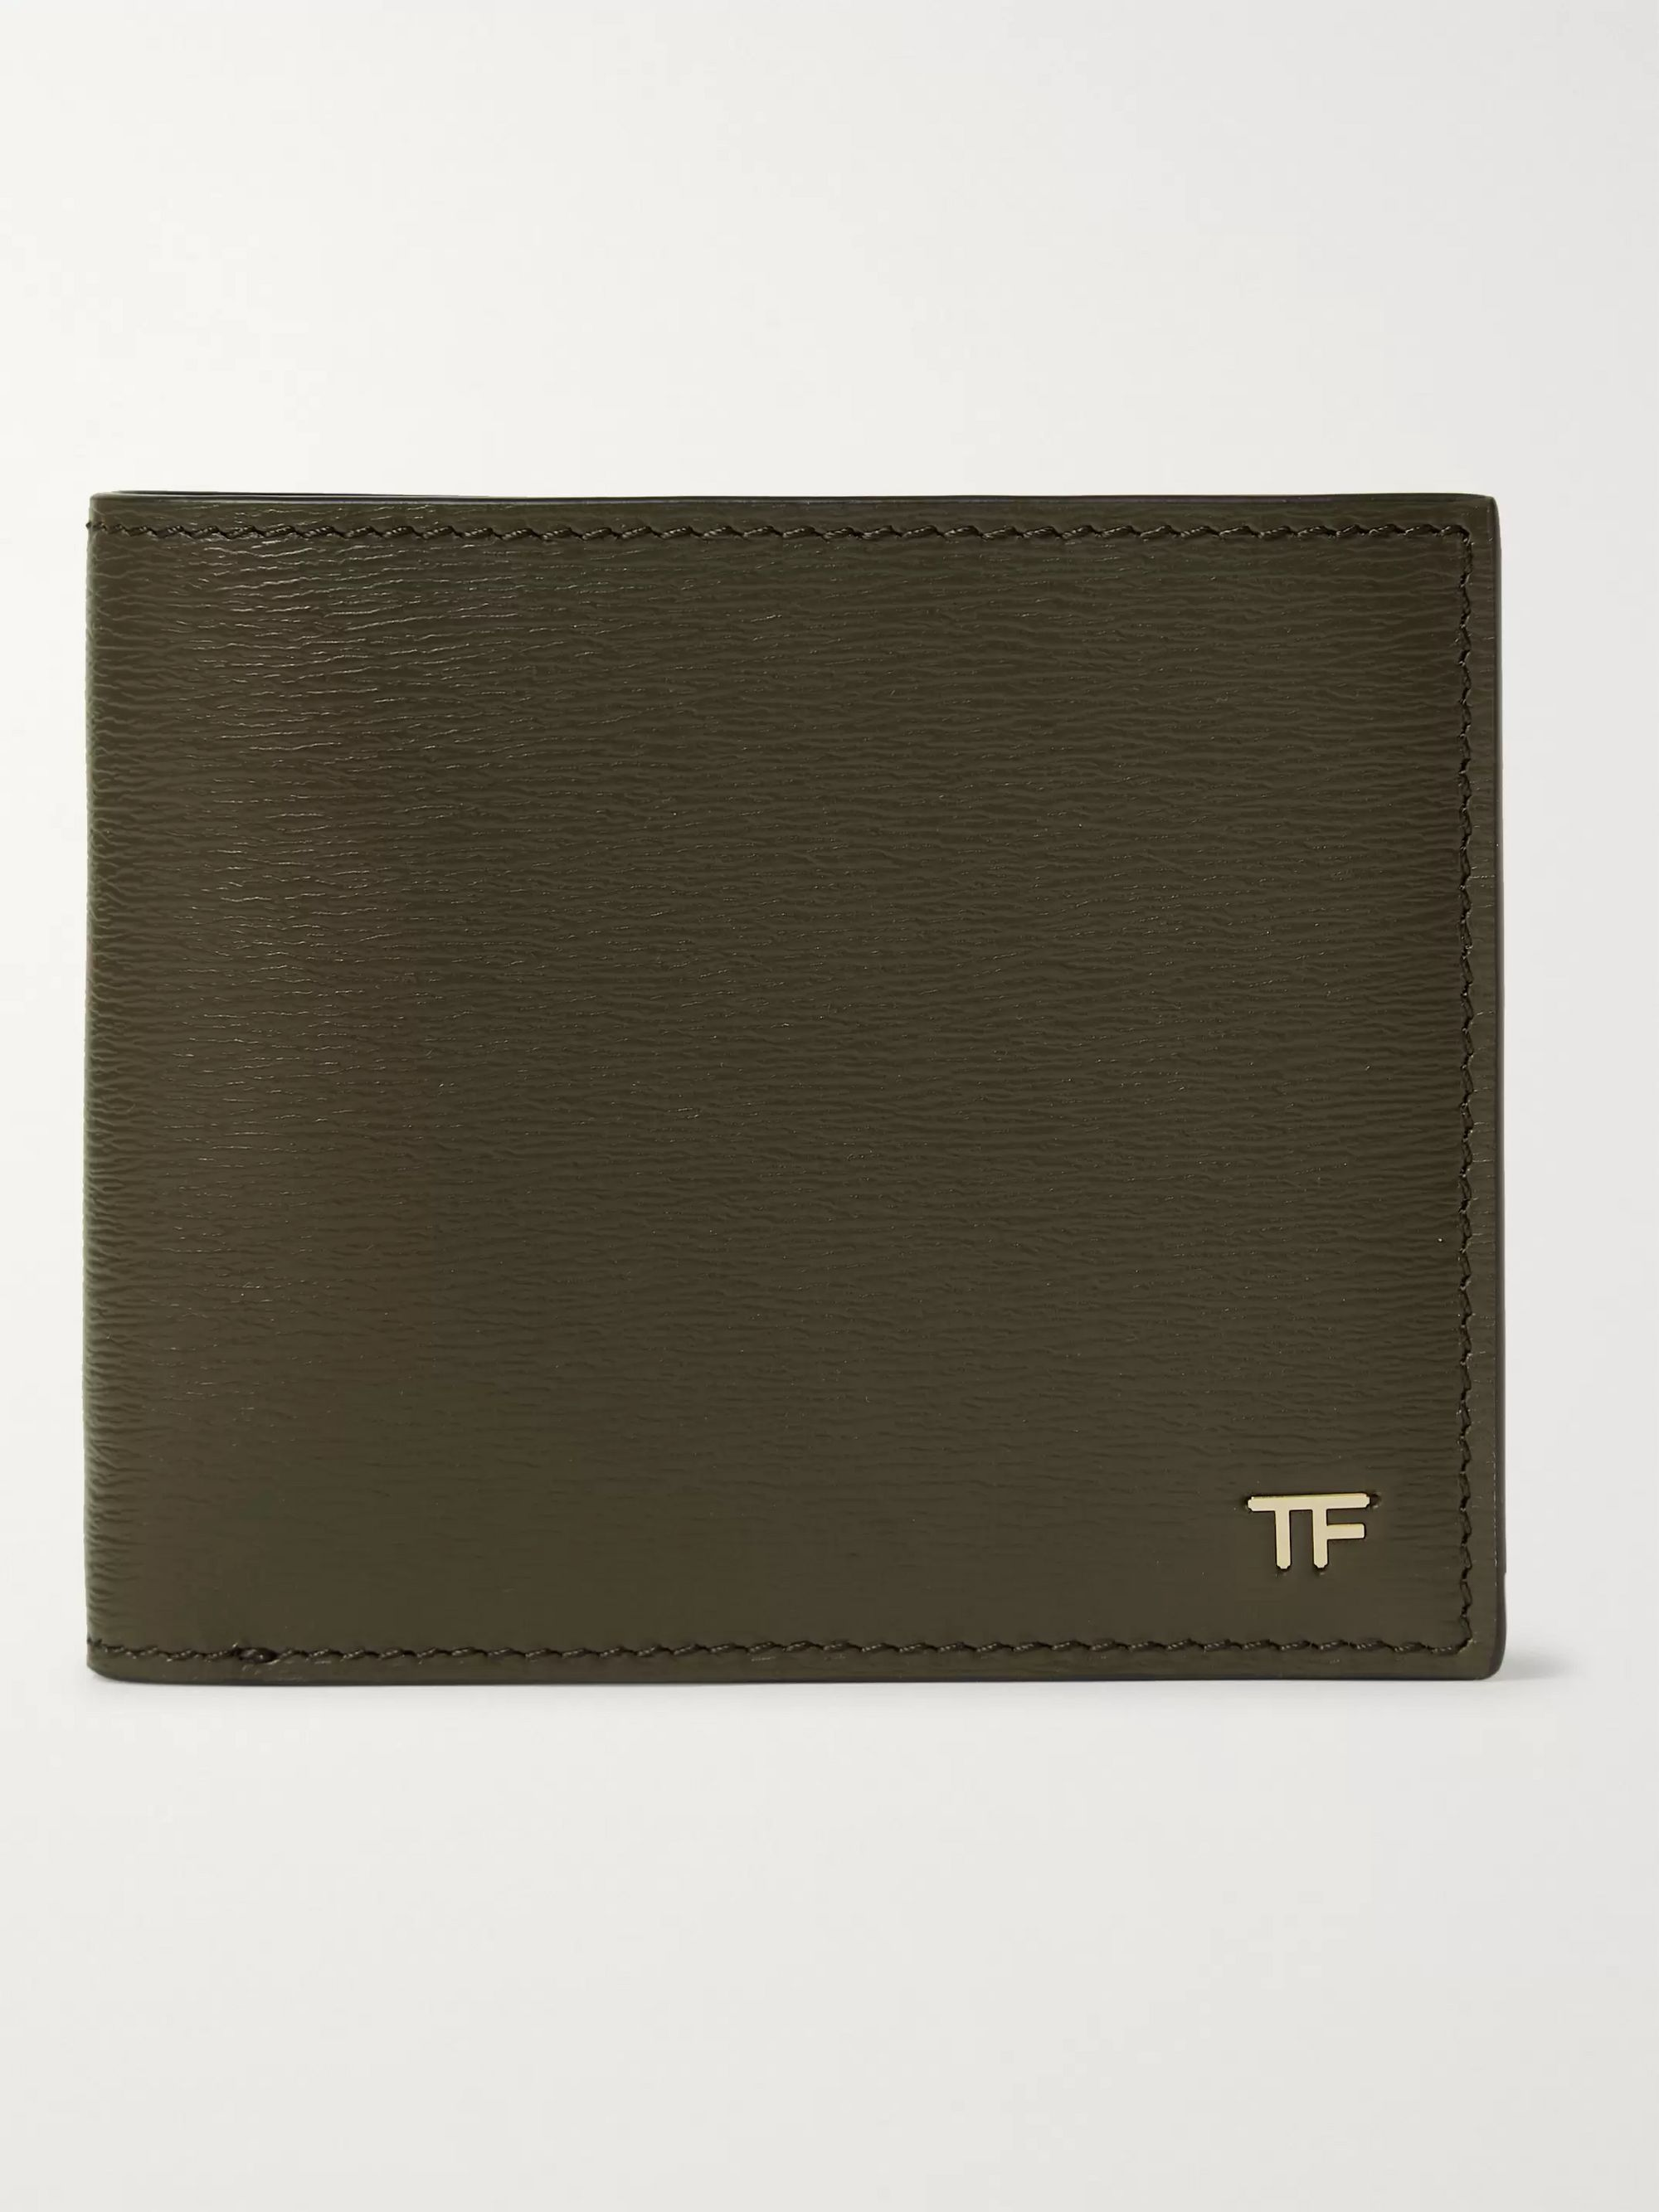 Full Grain Leather Billfold Wallet